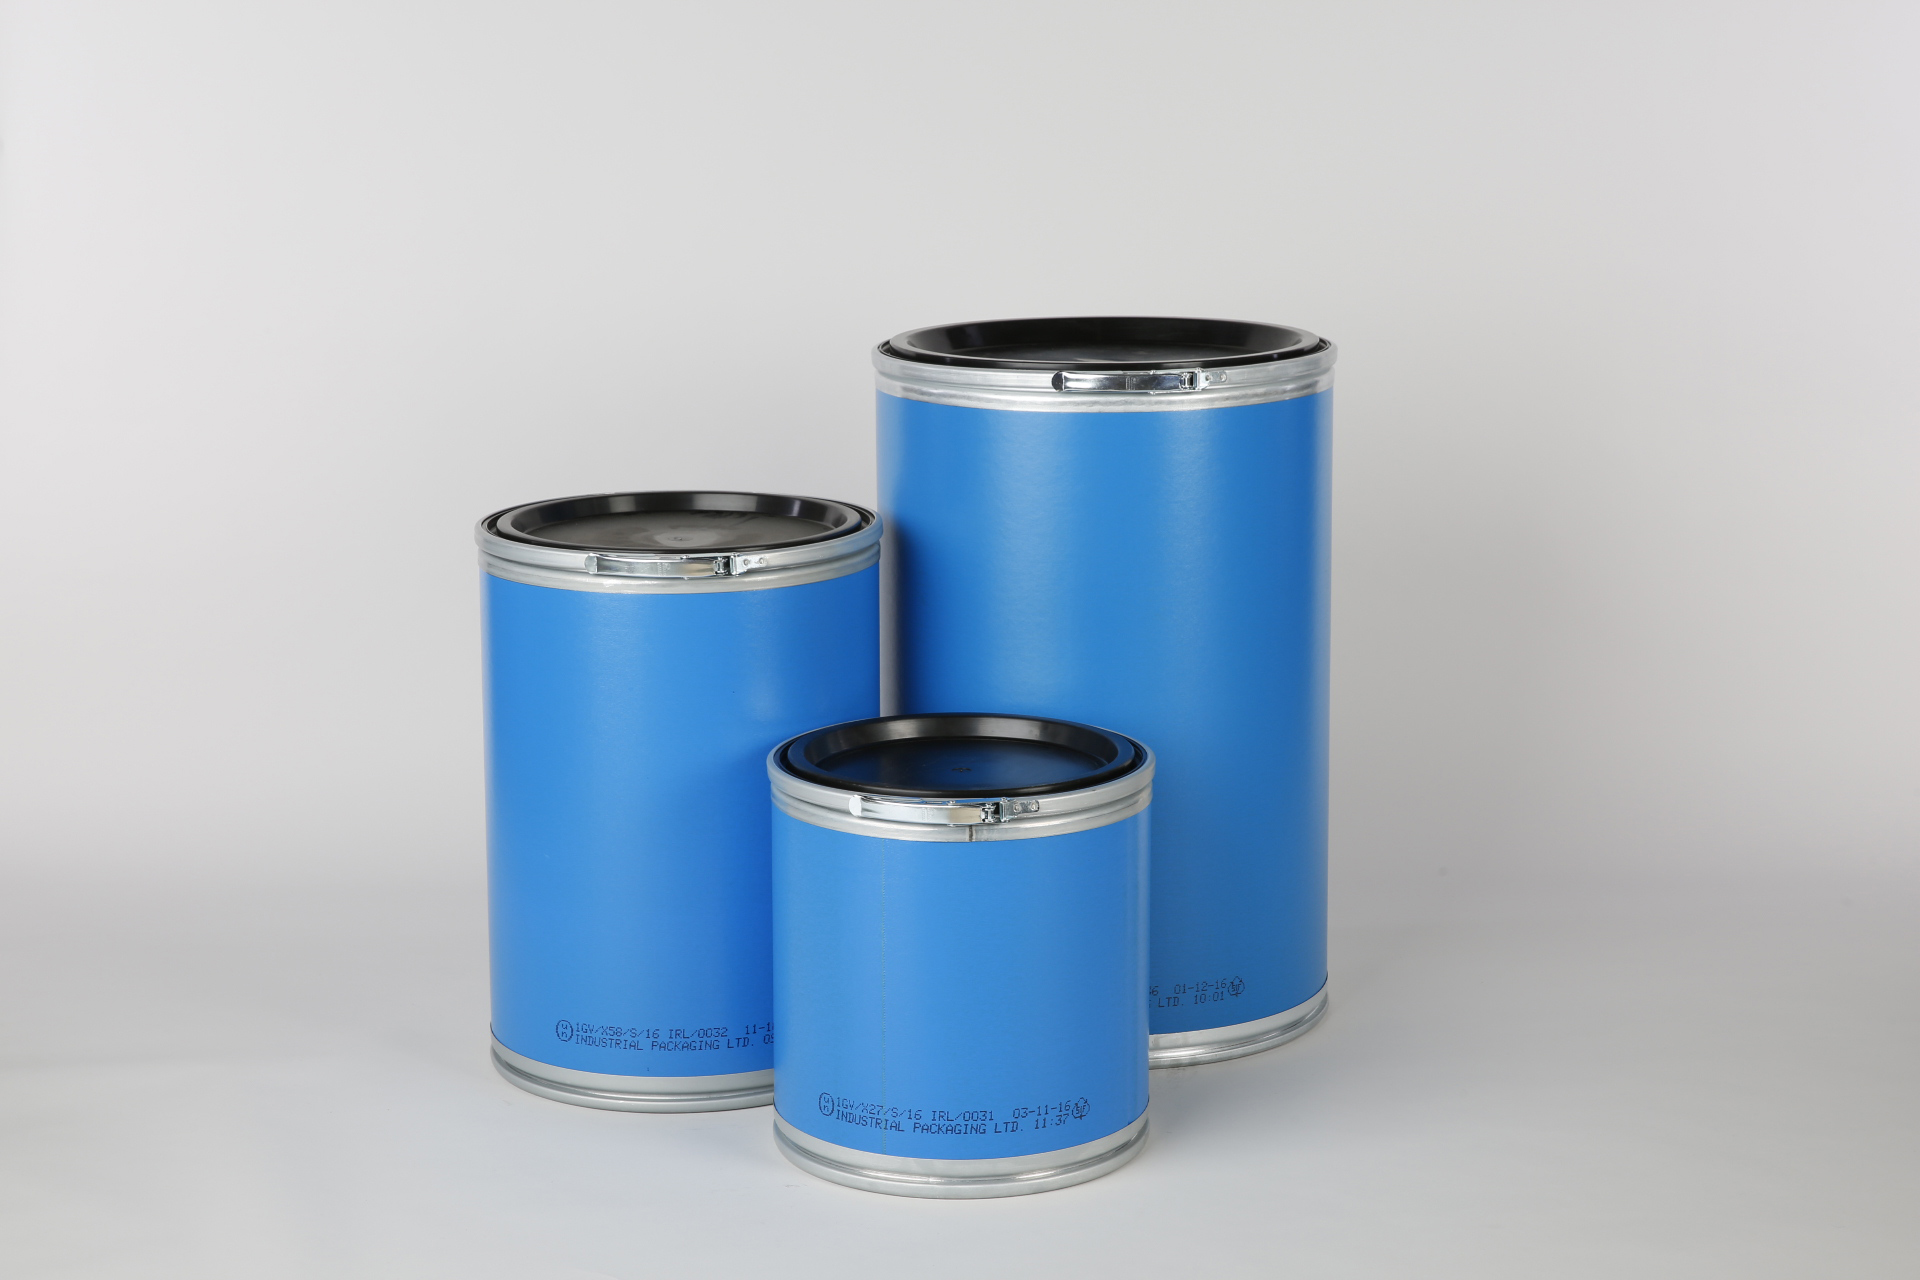 Three blue fibre drums of different sizes